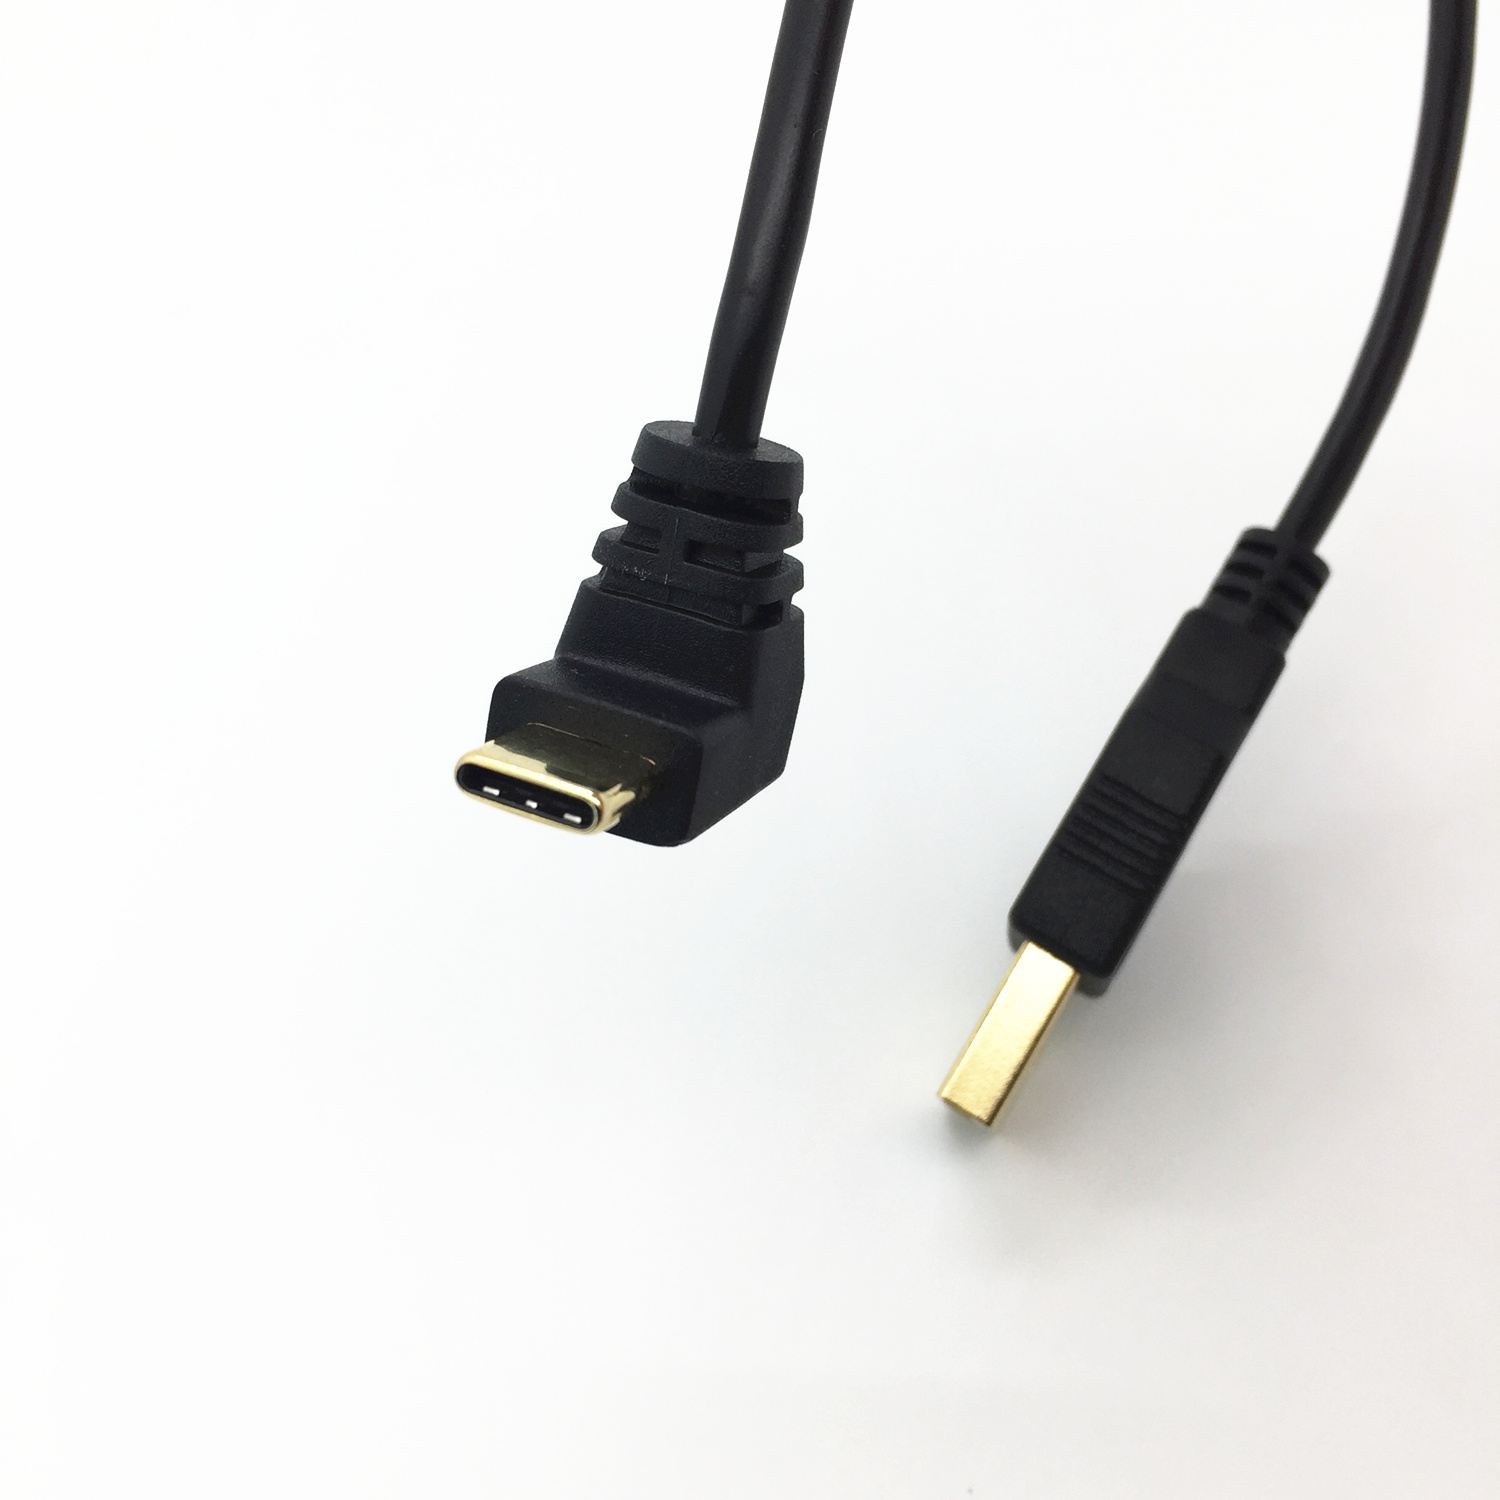 Consumer Electronics Painstaking Free Delivery Usb 2.0 A Male To 90 Degree Angle Typec Type-c Cable For Lg V30s+ v30s,q6a,g6+,g6,g20,lg G5 Se Reliable Performance Digital Cables